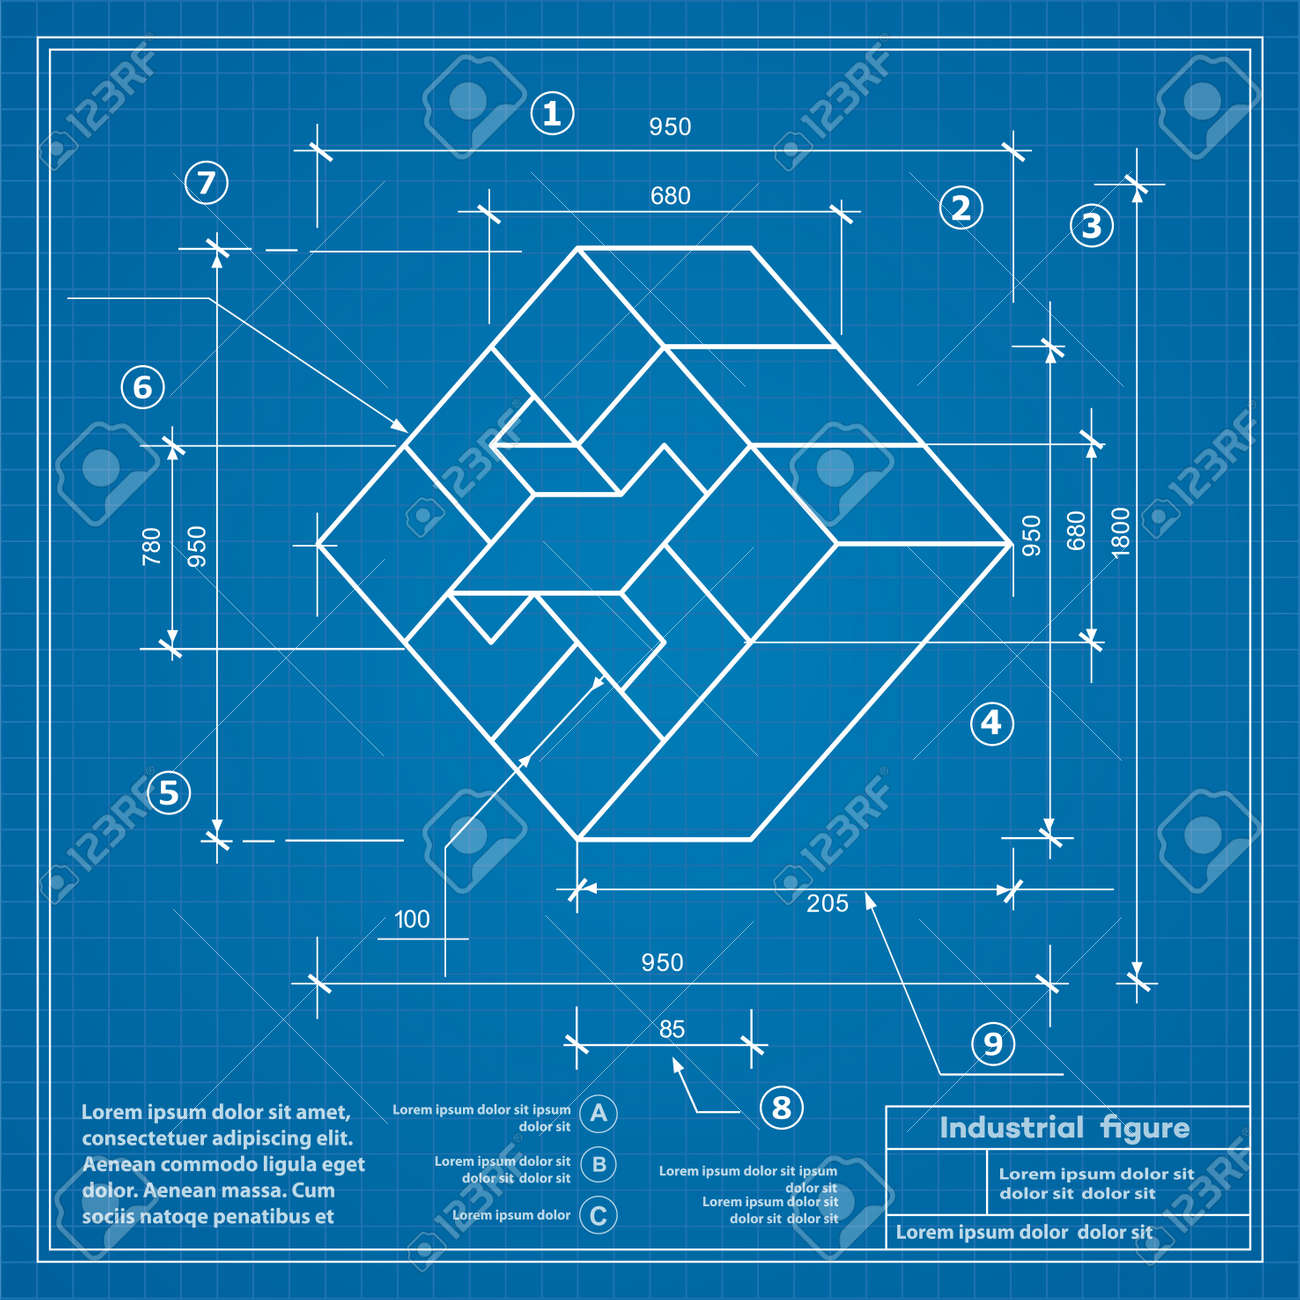 Industrial construction drawing production figures blueprint industrial construction drawing production figures blueprint background image stock vector 59888492 malvernweather Gallery